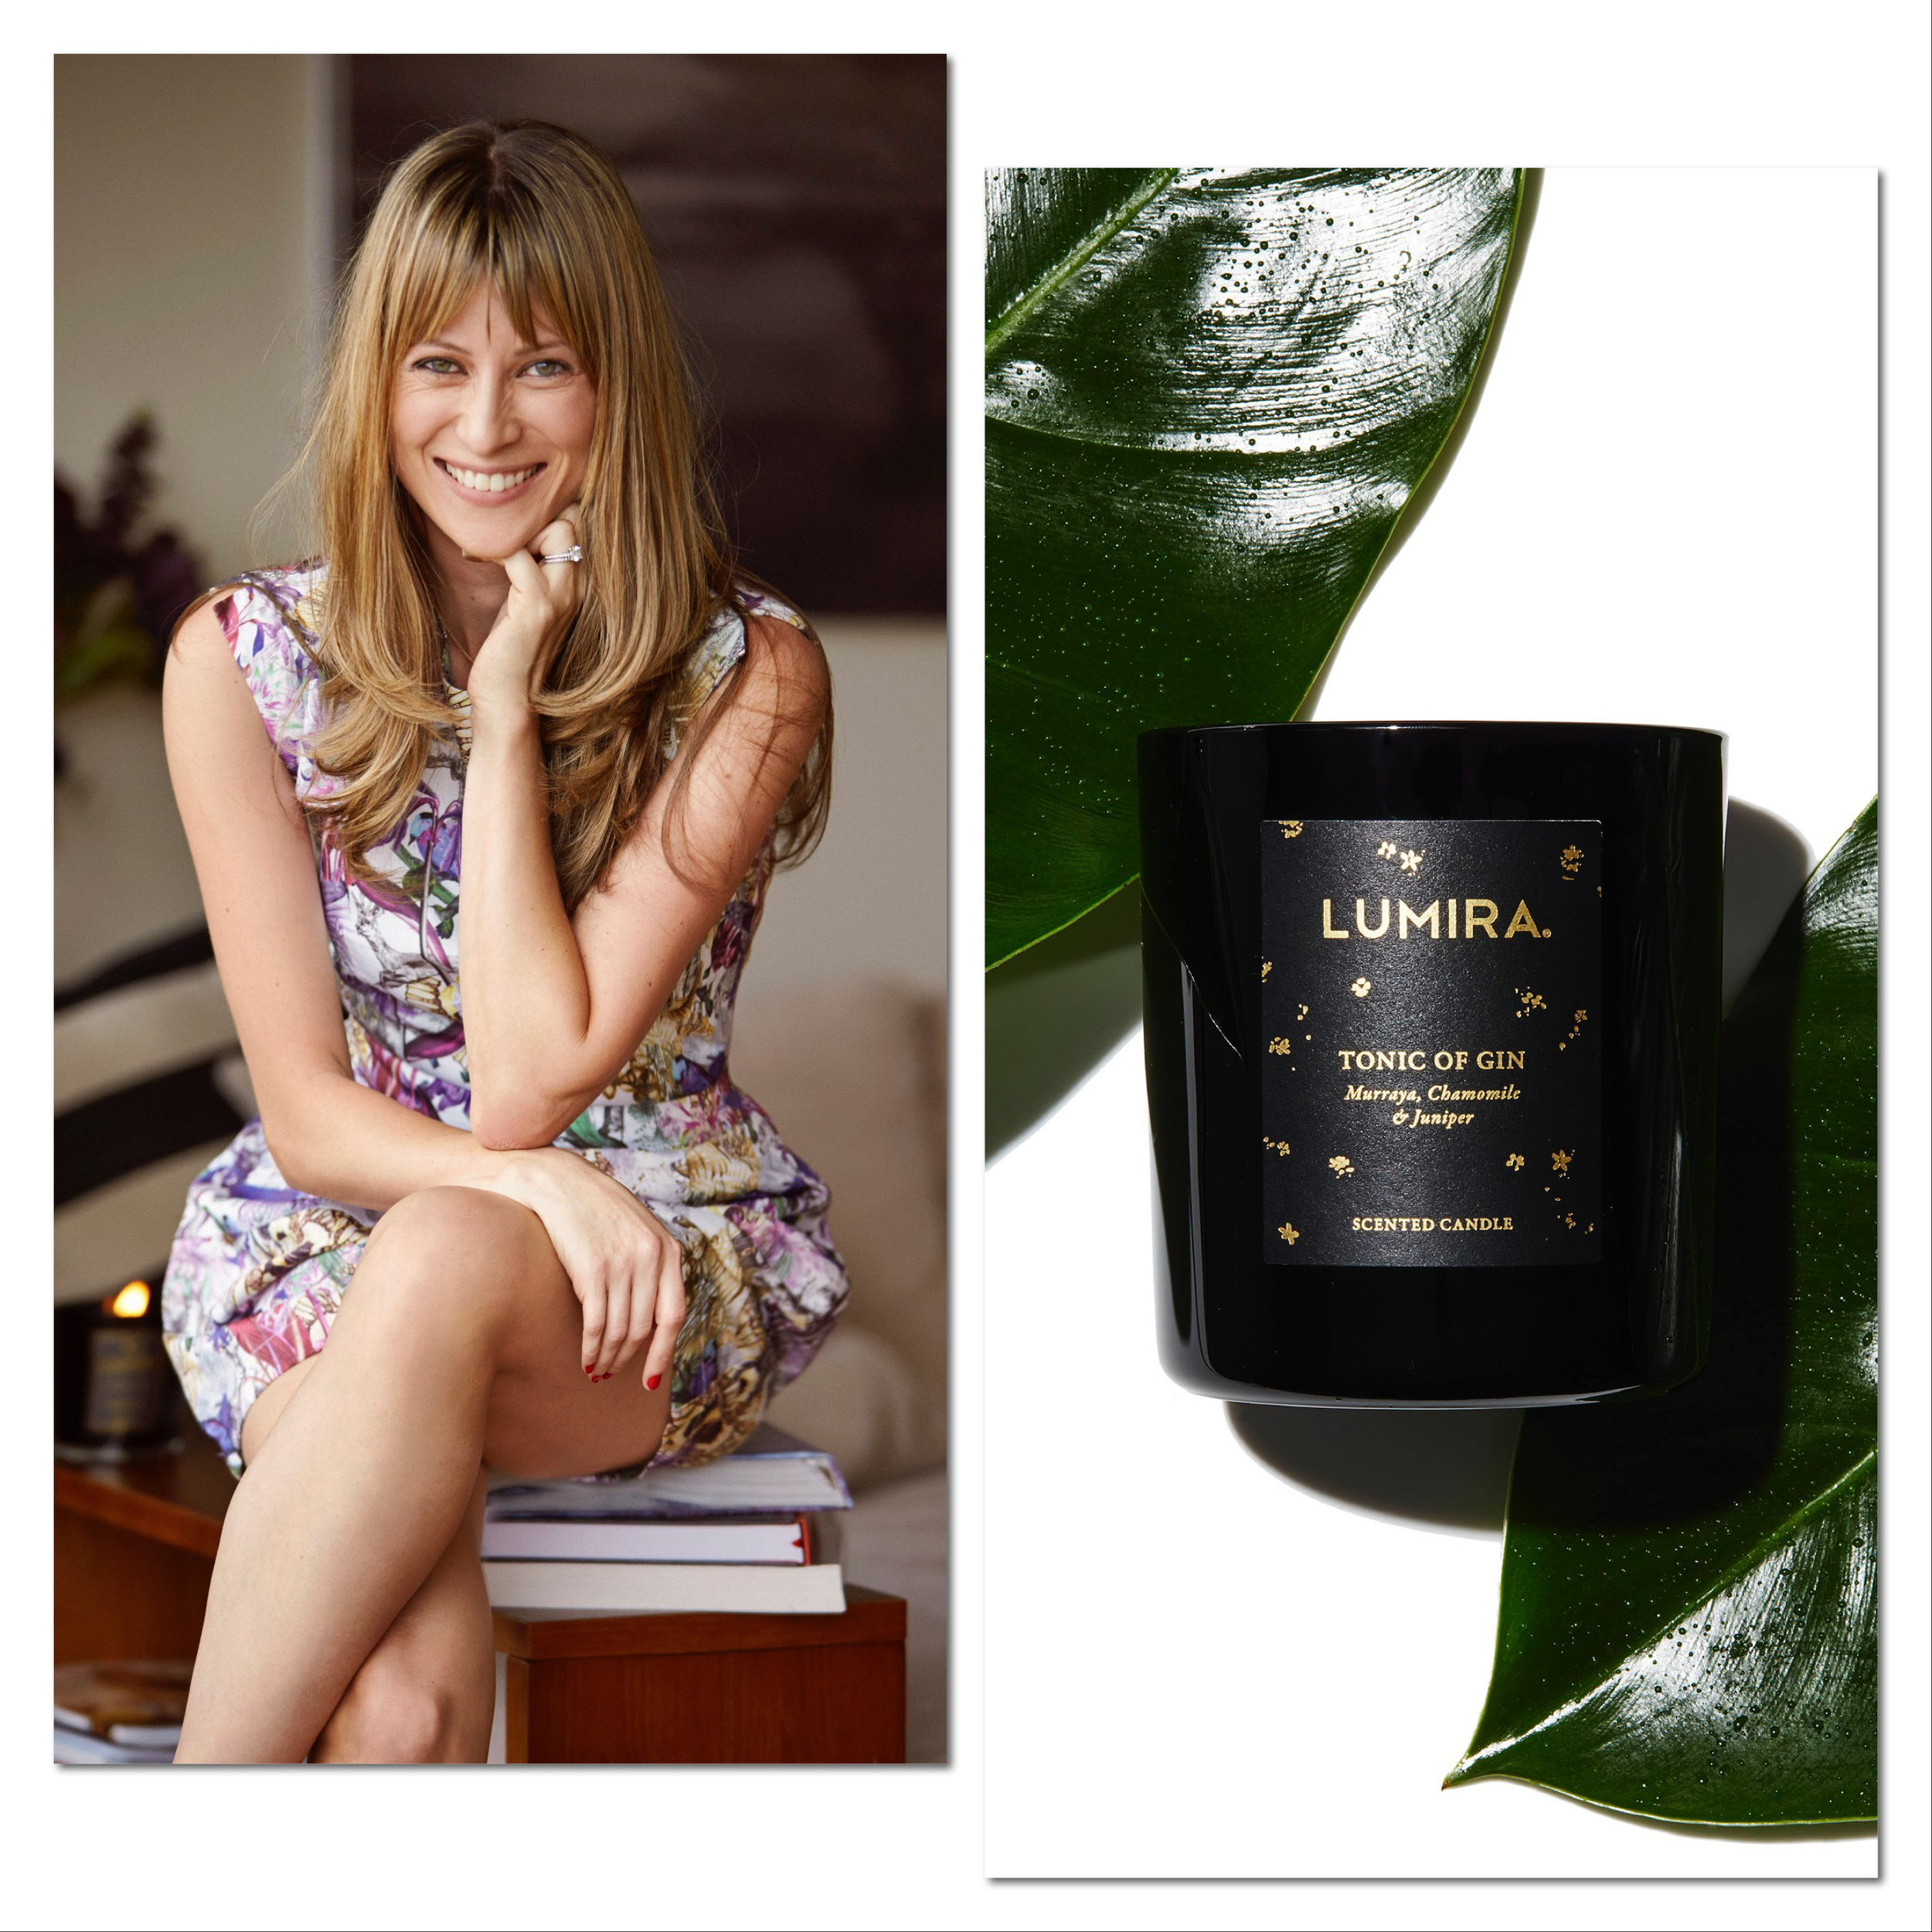 Almira Armstrong, Founder and CEO of Lumira; new to the collection, Tonic of Gin candle.